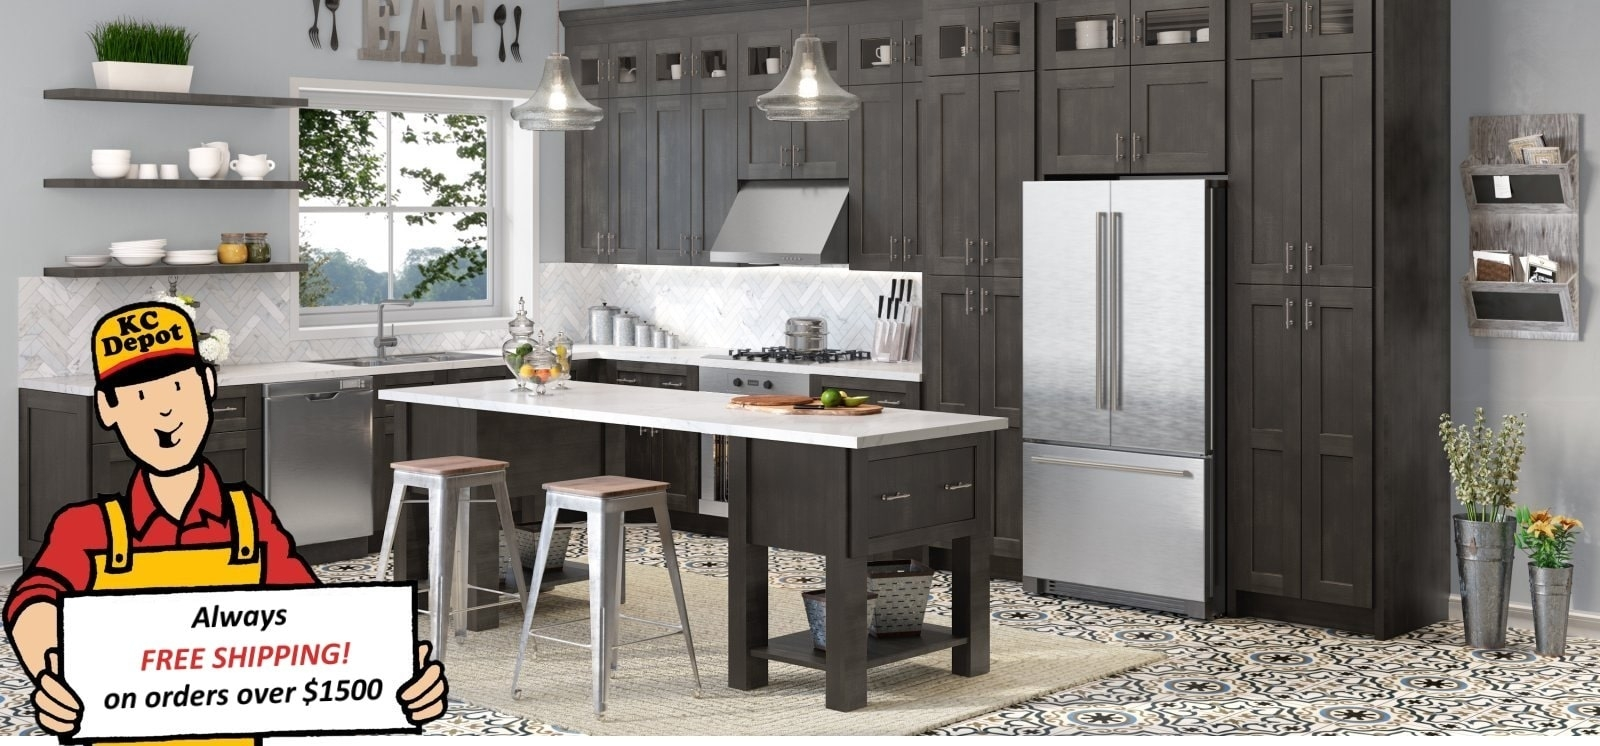 Learn about 10 uses for kitchen cabinets outside the kitchen. Rta Kitchen Cabinets Kitchen Cabinet Depot